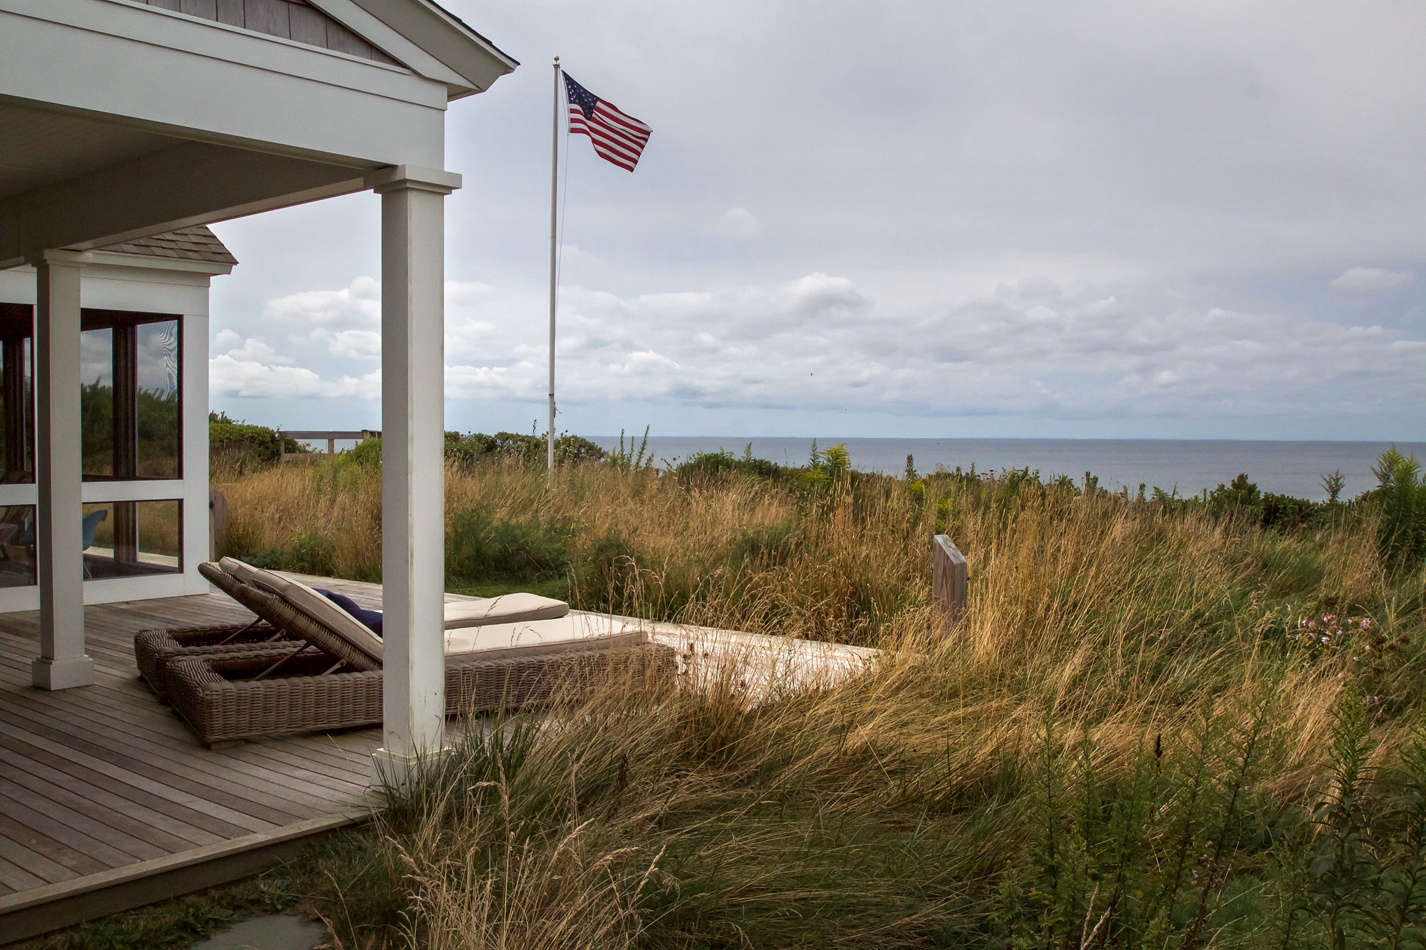 The continuous porches along the bay side are completely engulfed in a sea of grass.